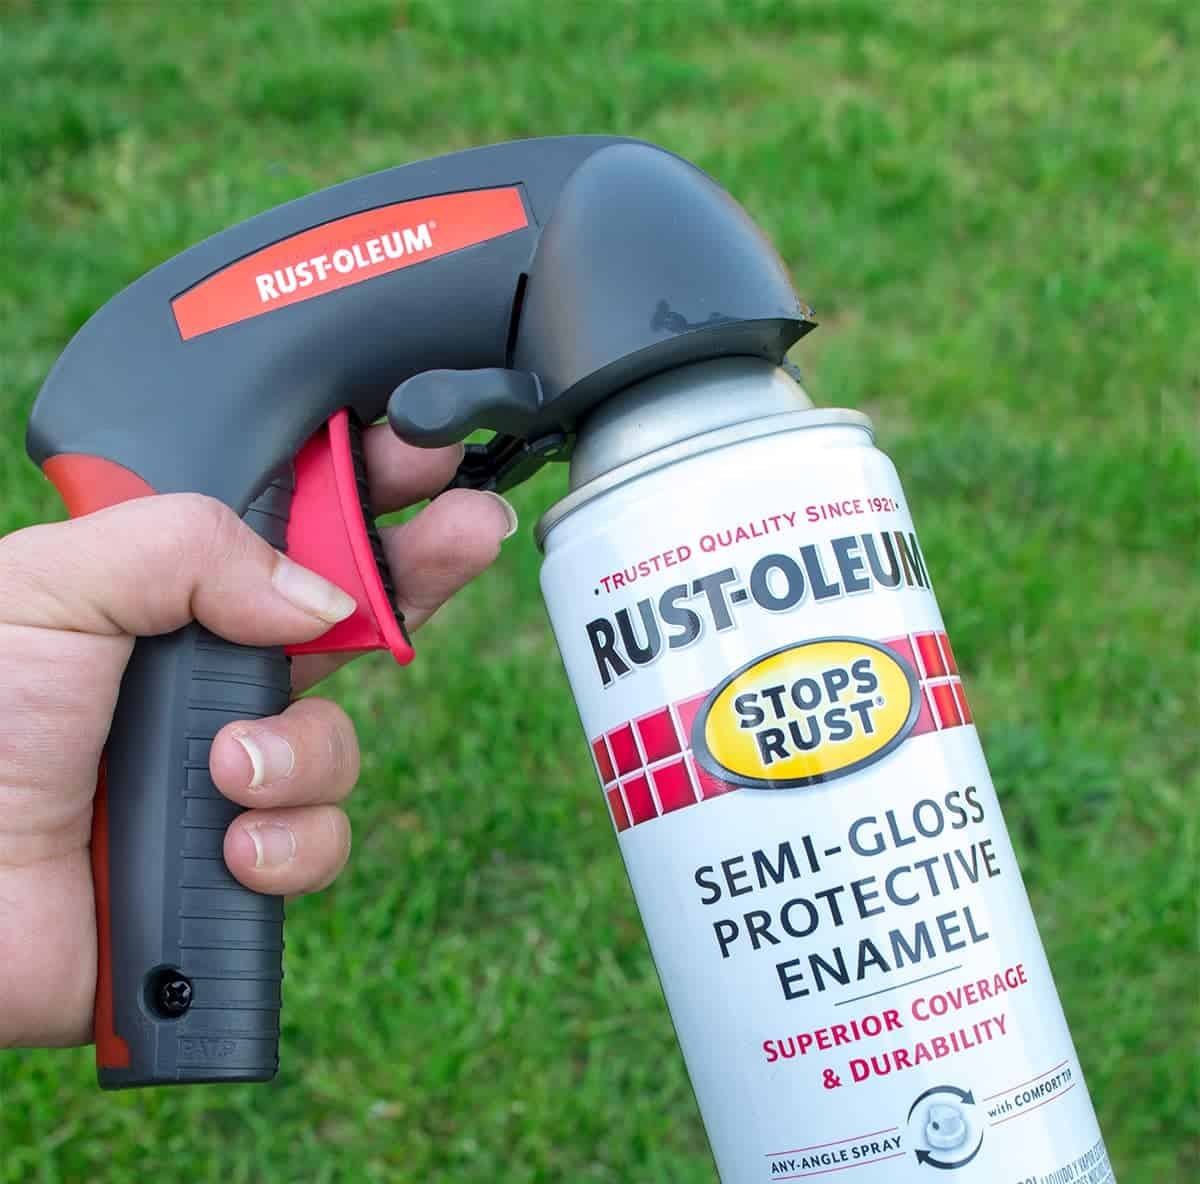 Can of rustoleum spray paint with comfort grip hand holder attached.